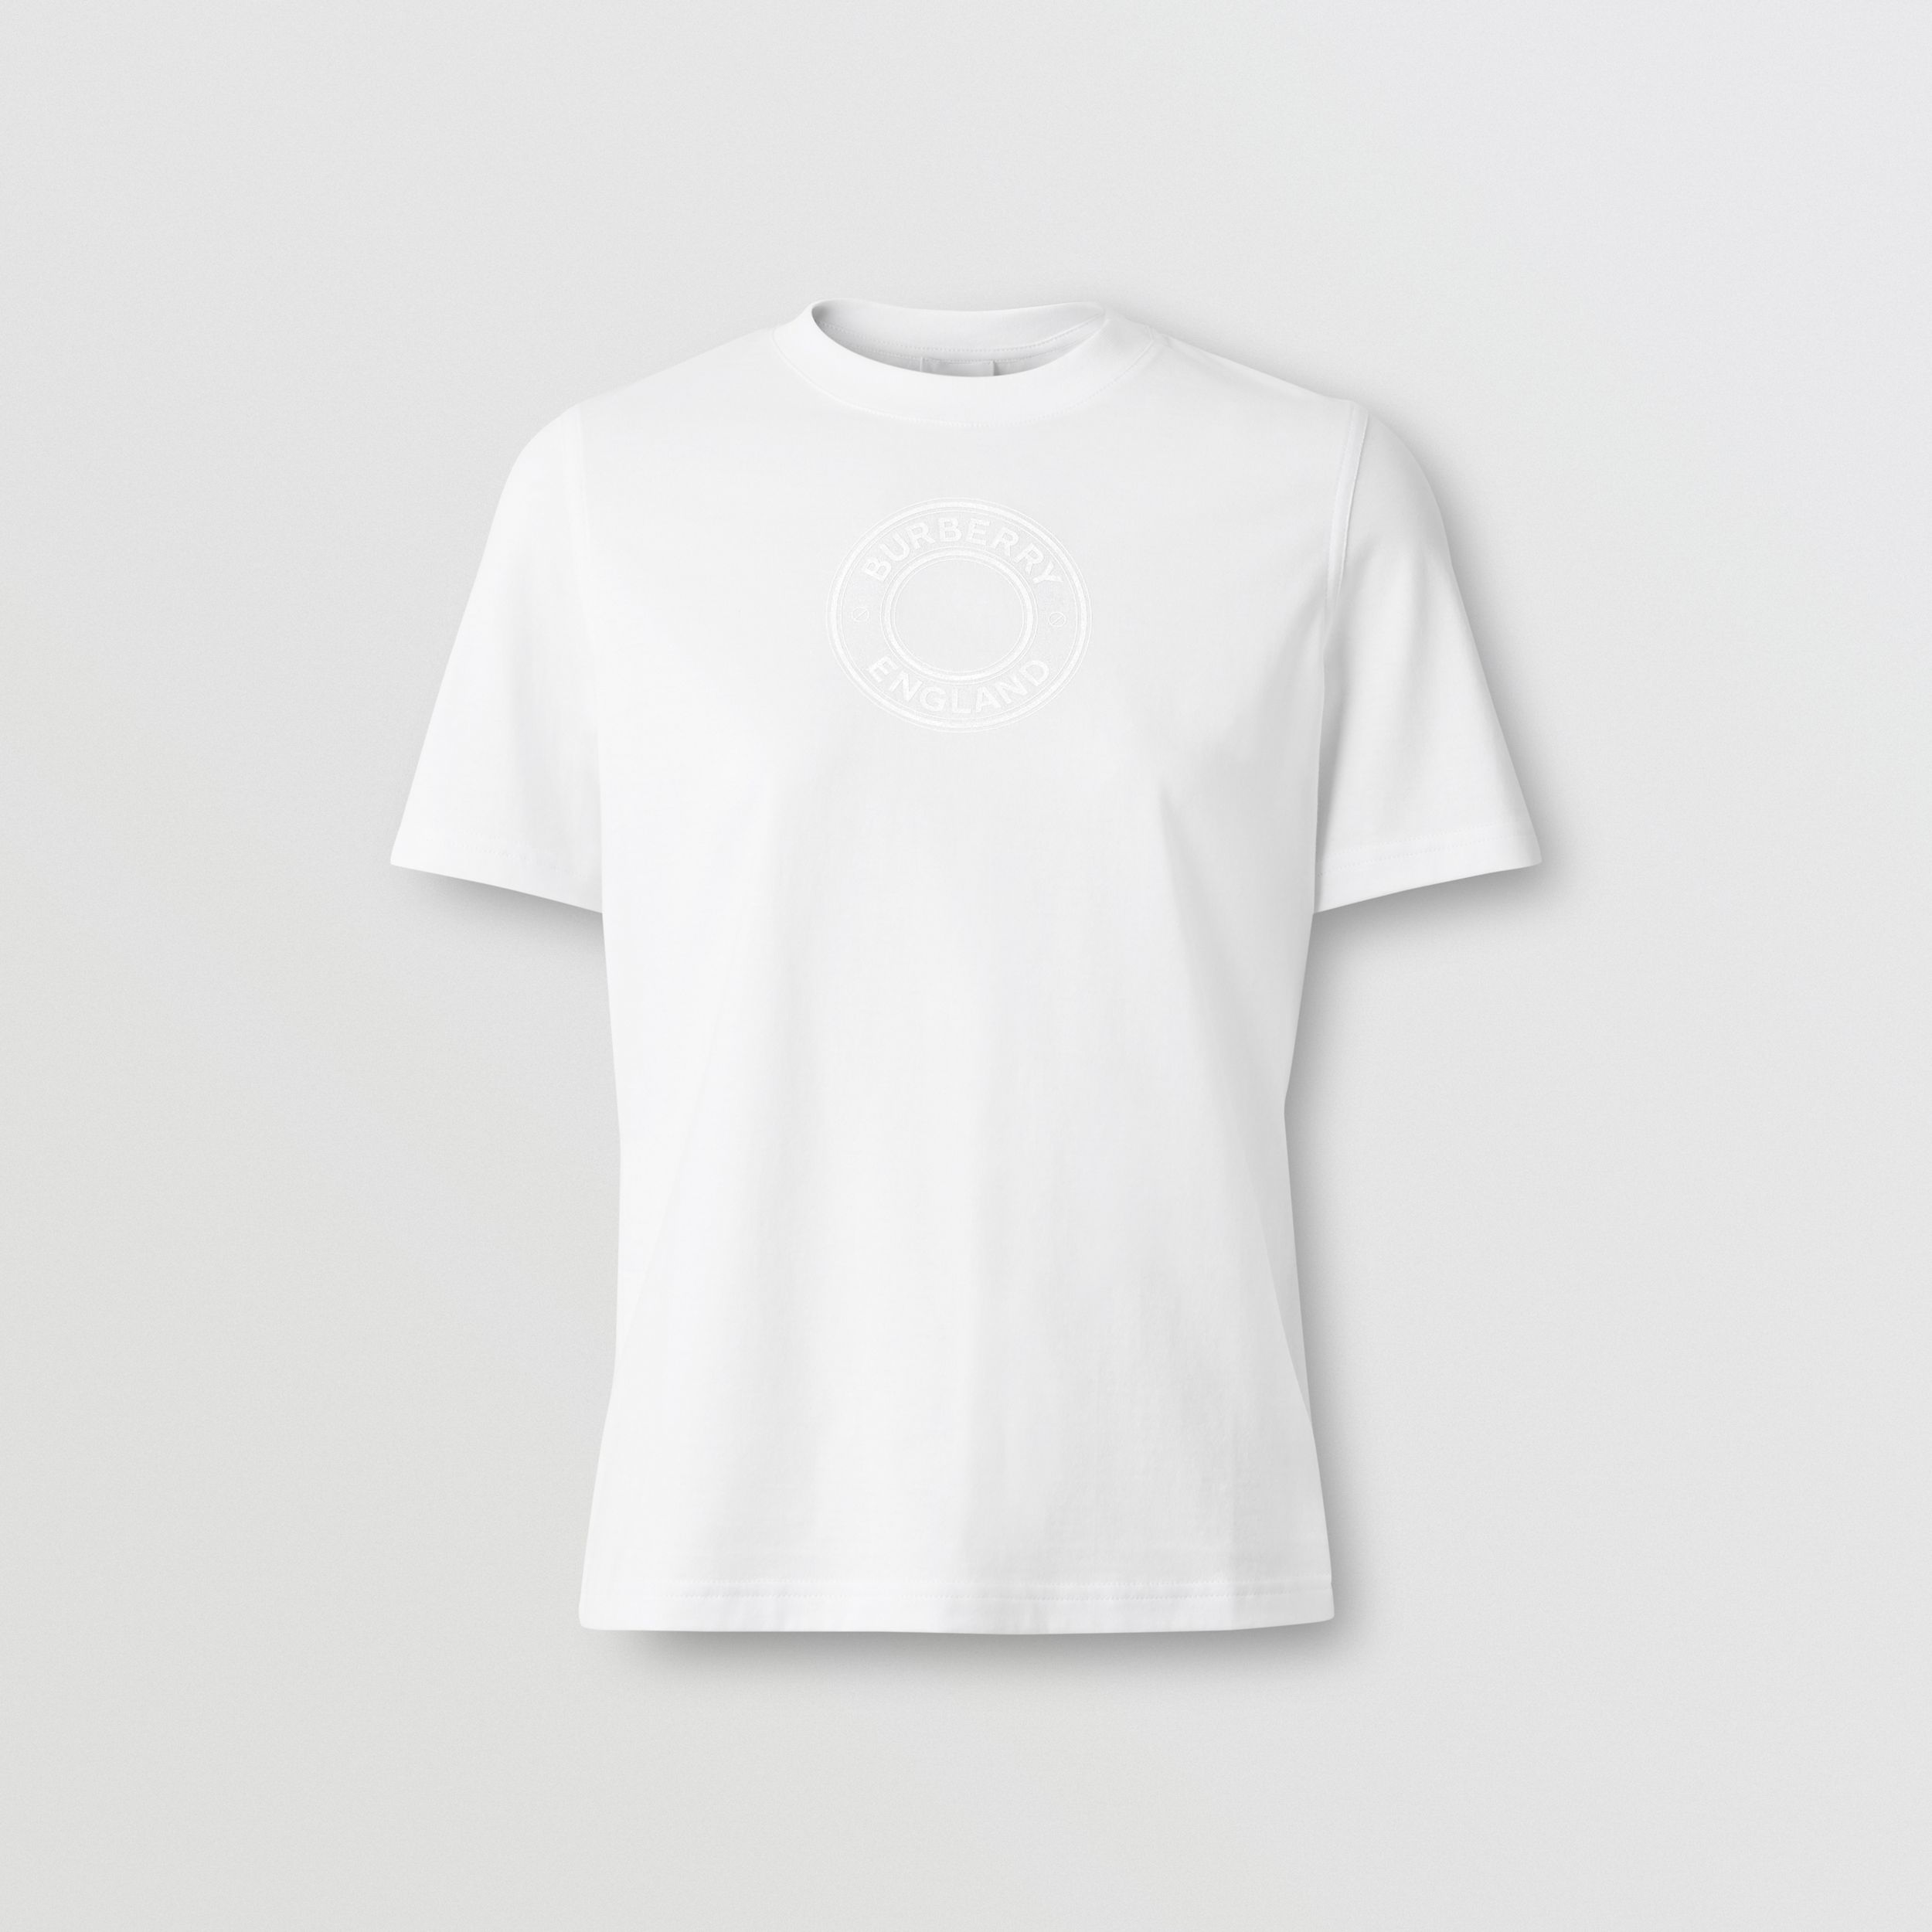 Logo Graphic Cotton T-shirt in White - Women | Burberry - 4